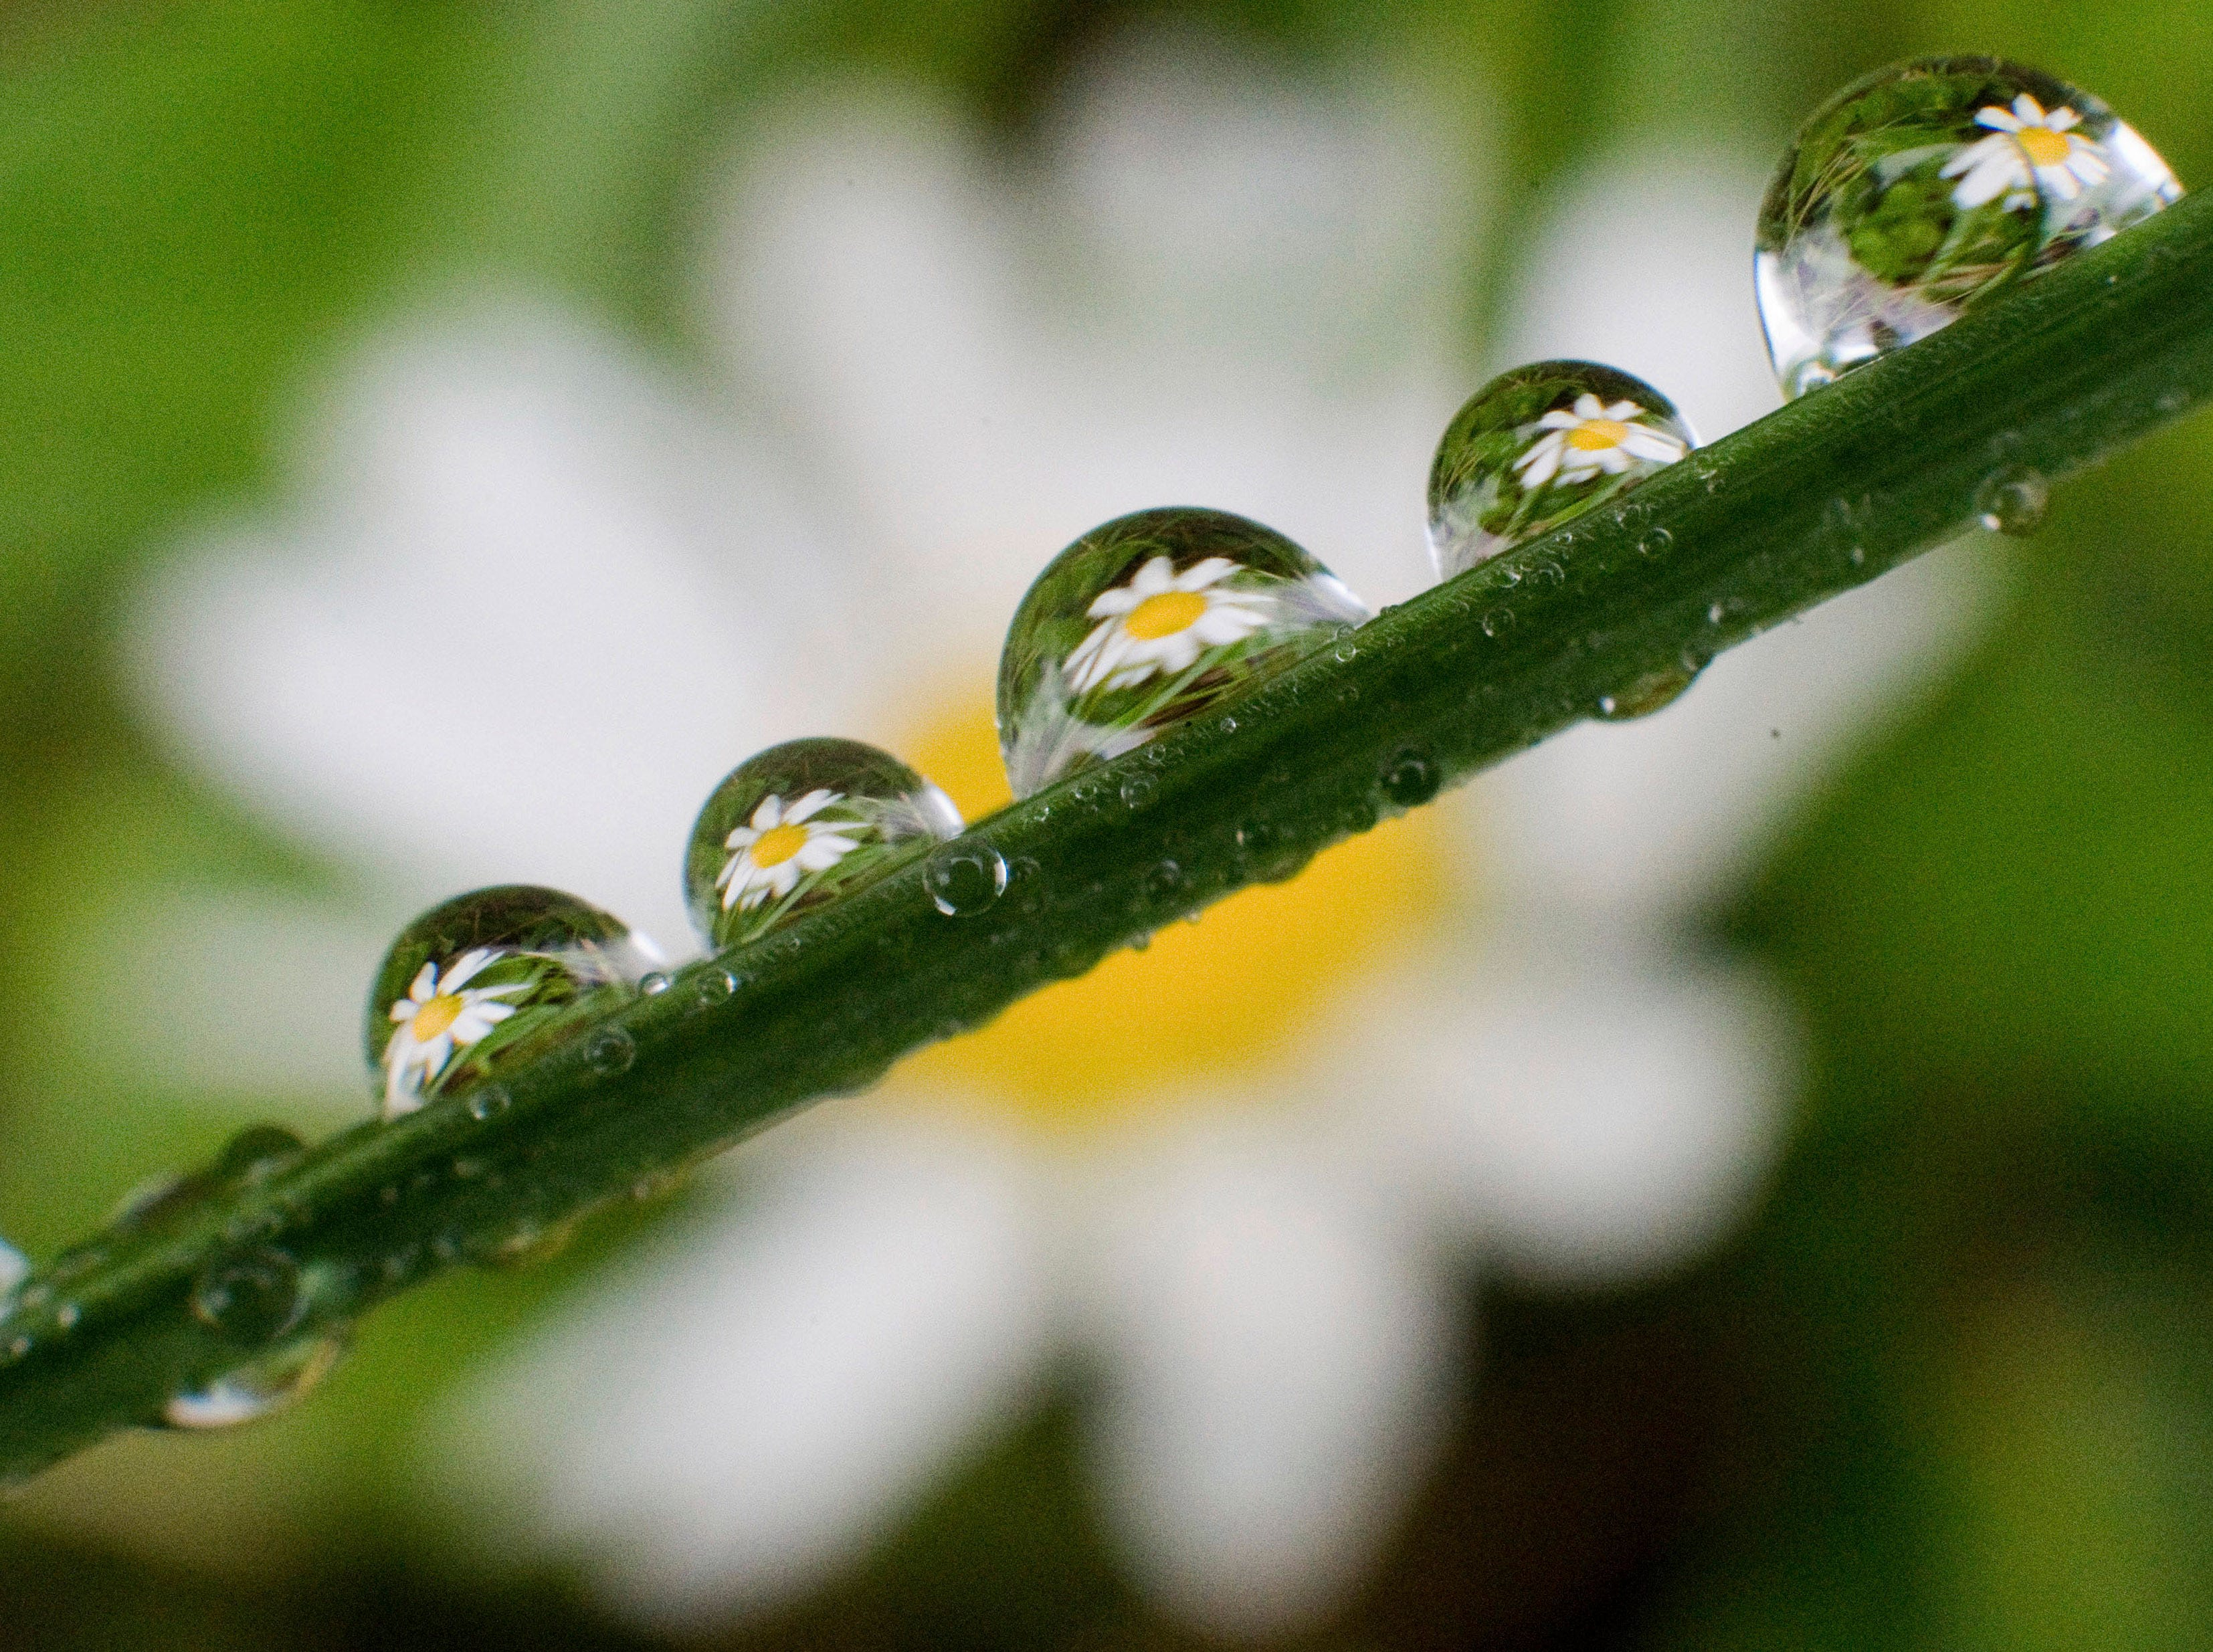 Daisies are seen in rain drops on a blade of grass in Laatzen,  Germany, Tuesday, May 21, 2019.